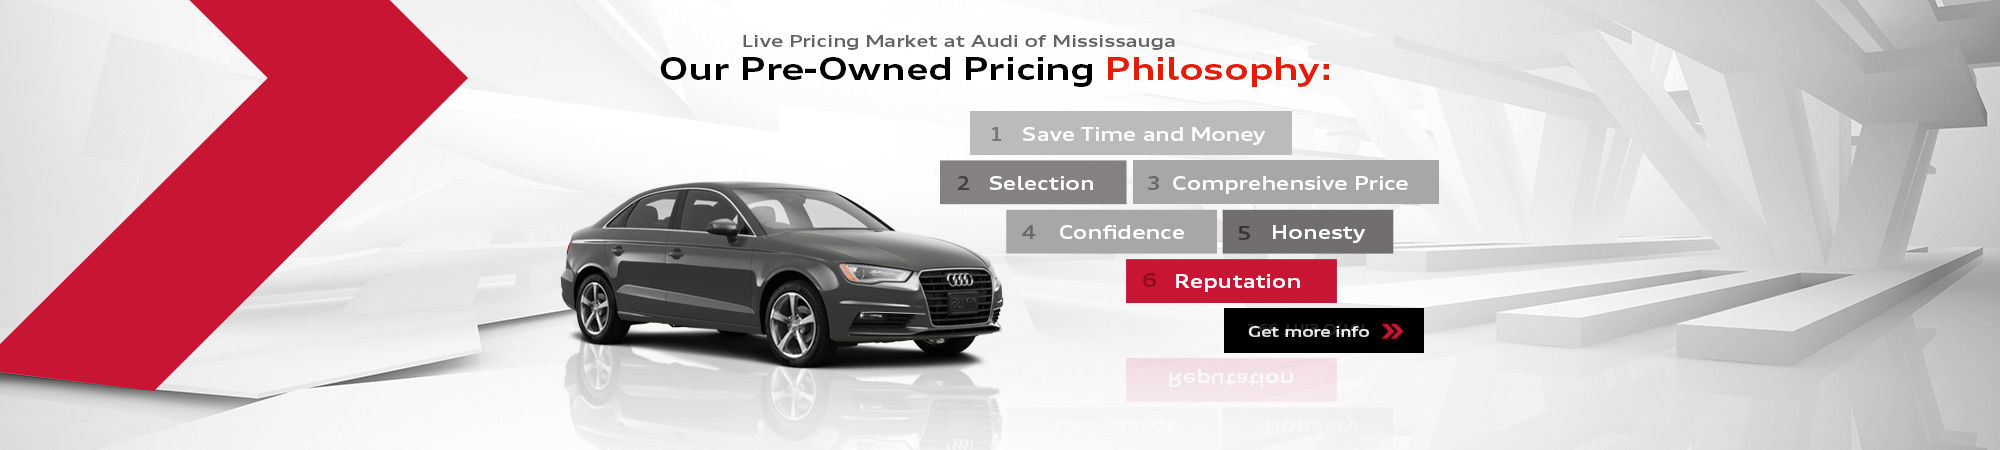 you plus have may of waterloo that heard do entails know pre truly what certified audikw is feature kitchener but audi owned